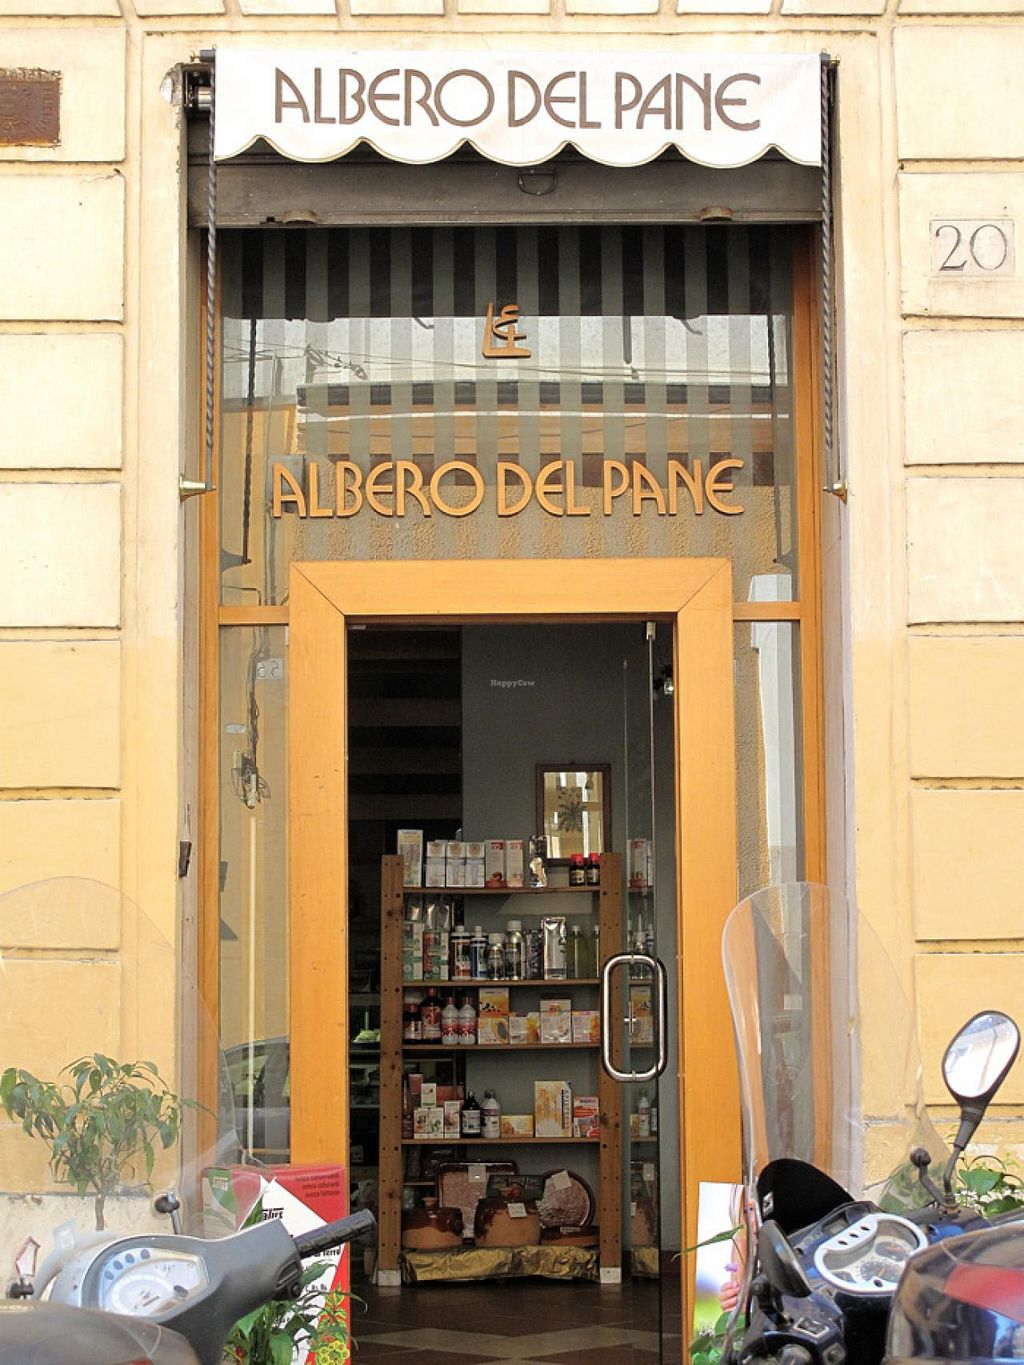 """Photo of Albero dal Pane  by <a href=""""/members/profile/lallilaranja"""">lallilaranja</a> <br/>storefront <br/> March 16, 2014  - <a href='/contact/abuse/image/19239/66066'>Report</a>"""